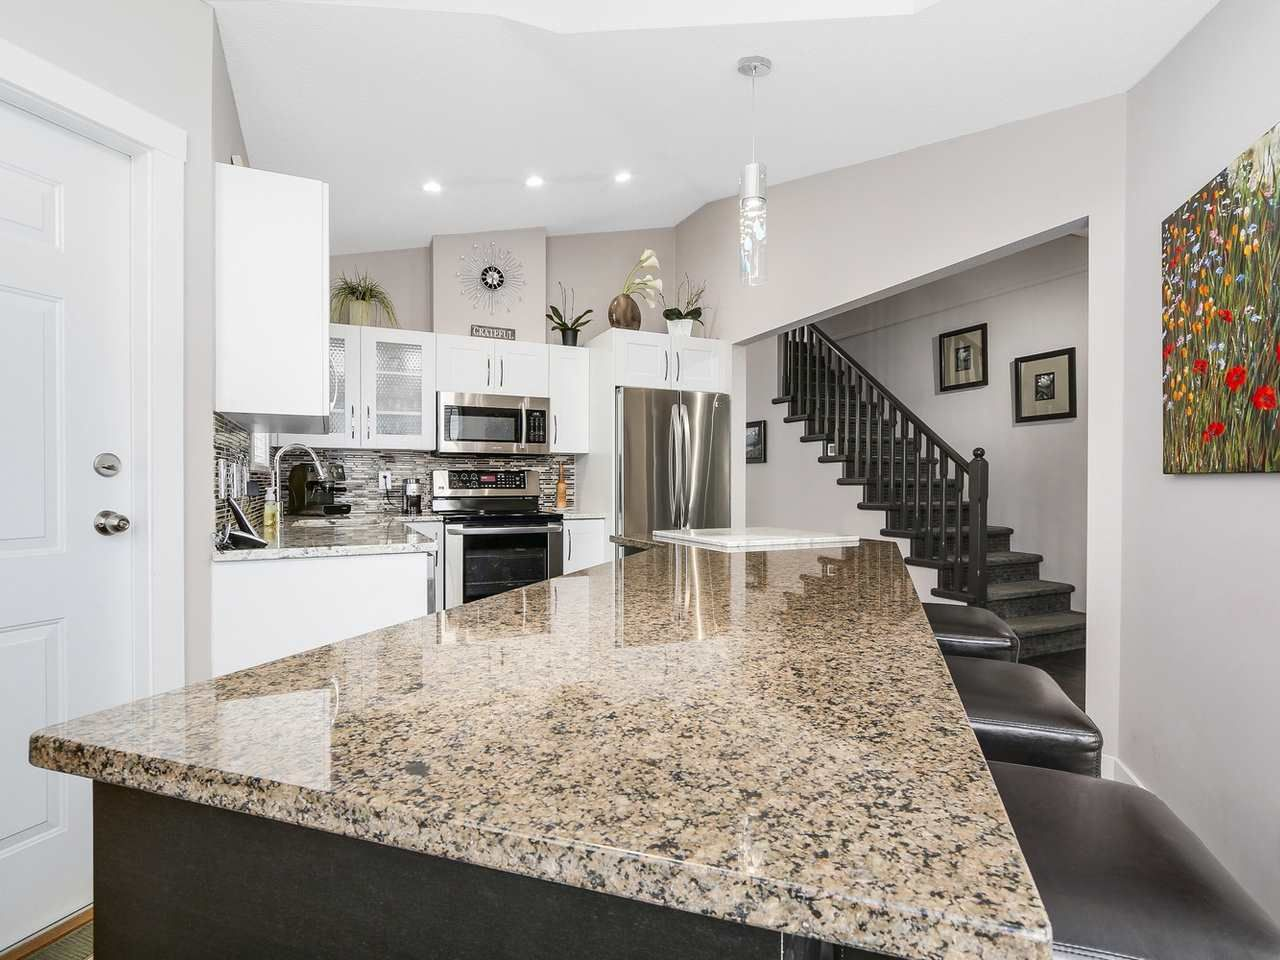 """Photo 6: Photos: 72 9208 208 Street in Langley: Walnut Grove Townhouse for sale in """"CHURCHILL PARK"""" : MLS®# R2155500"""